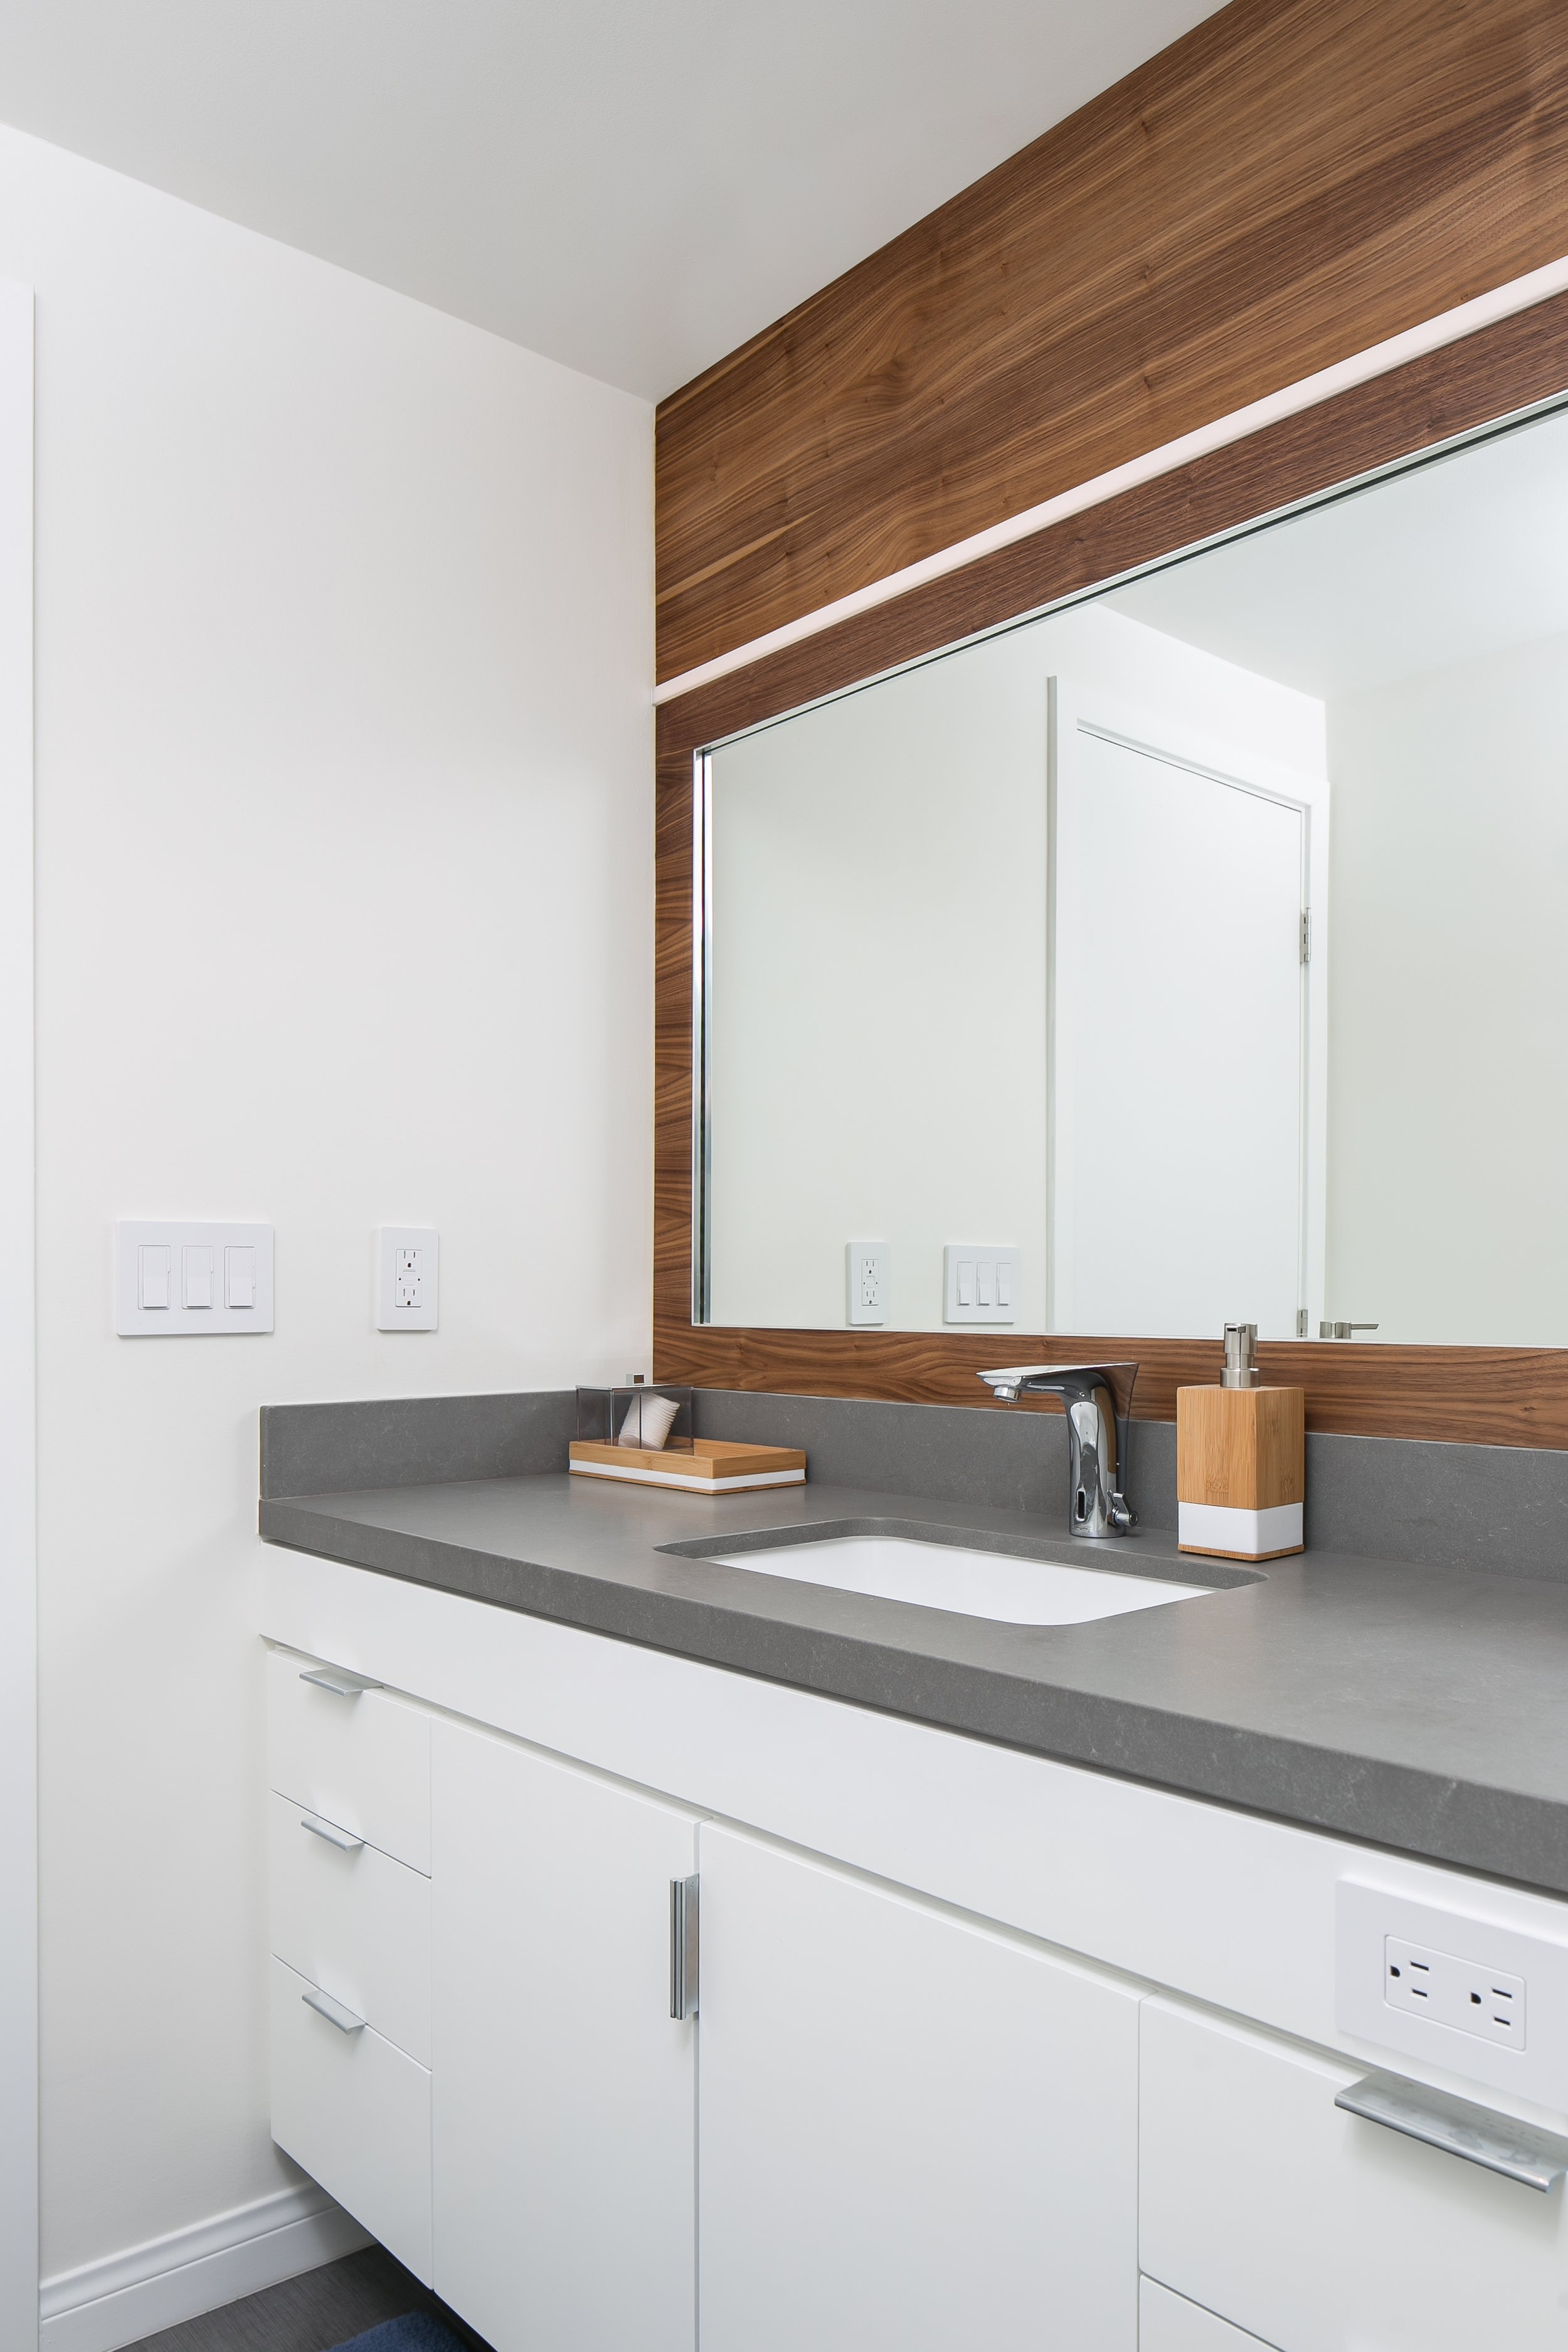 Large mirror with walnut surround and modern lighting atop white vanity with grey counter